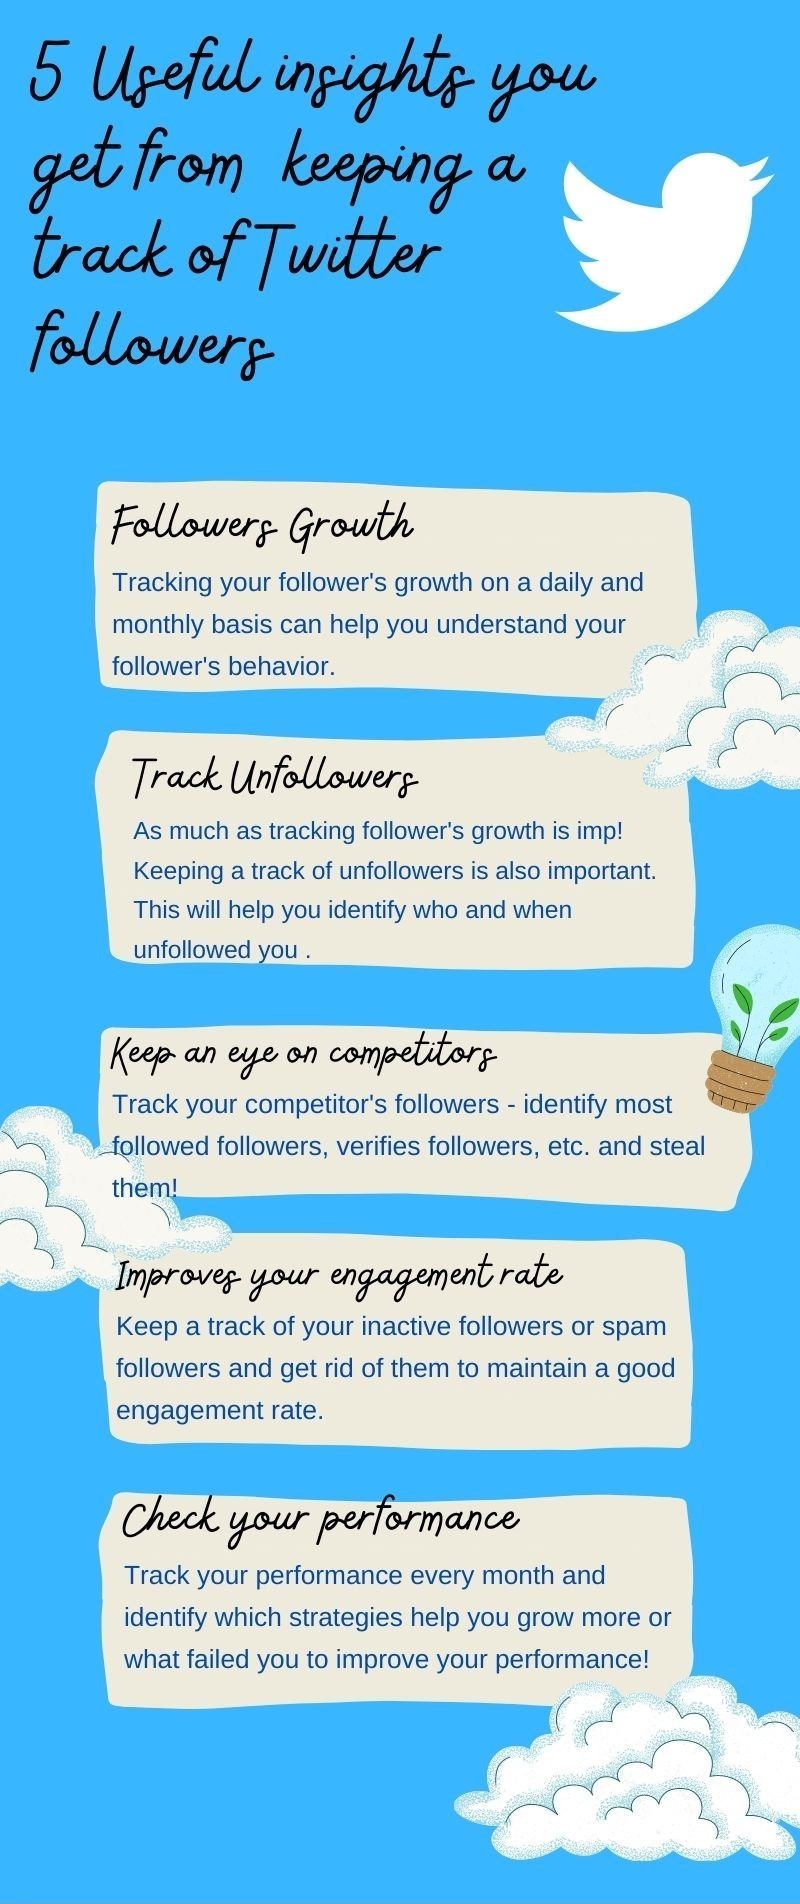 5 Useful insights you get from keeping a track of Twitter followers